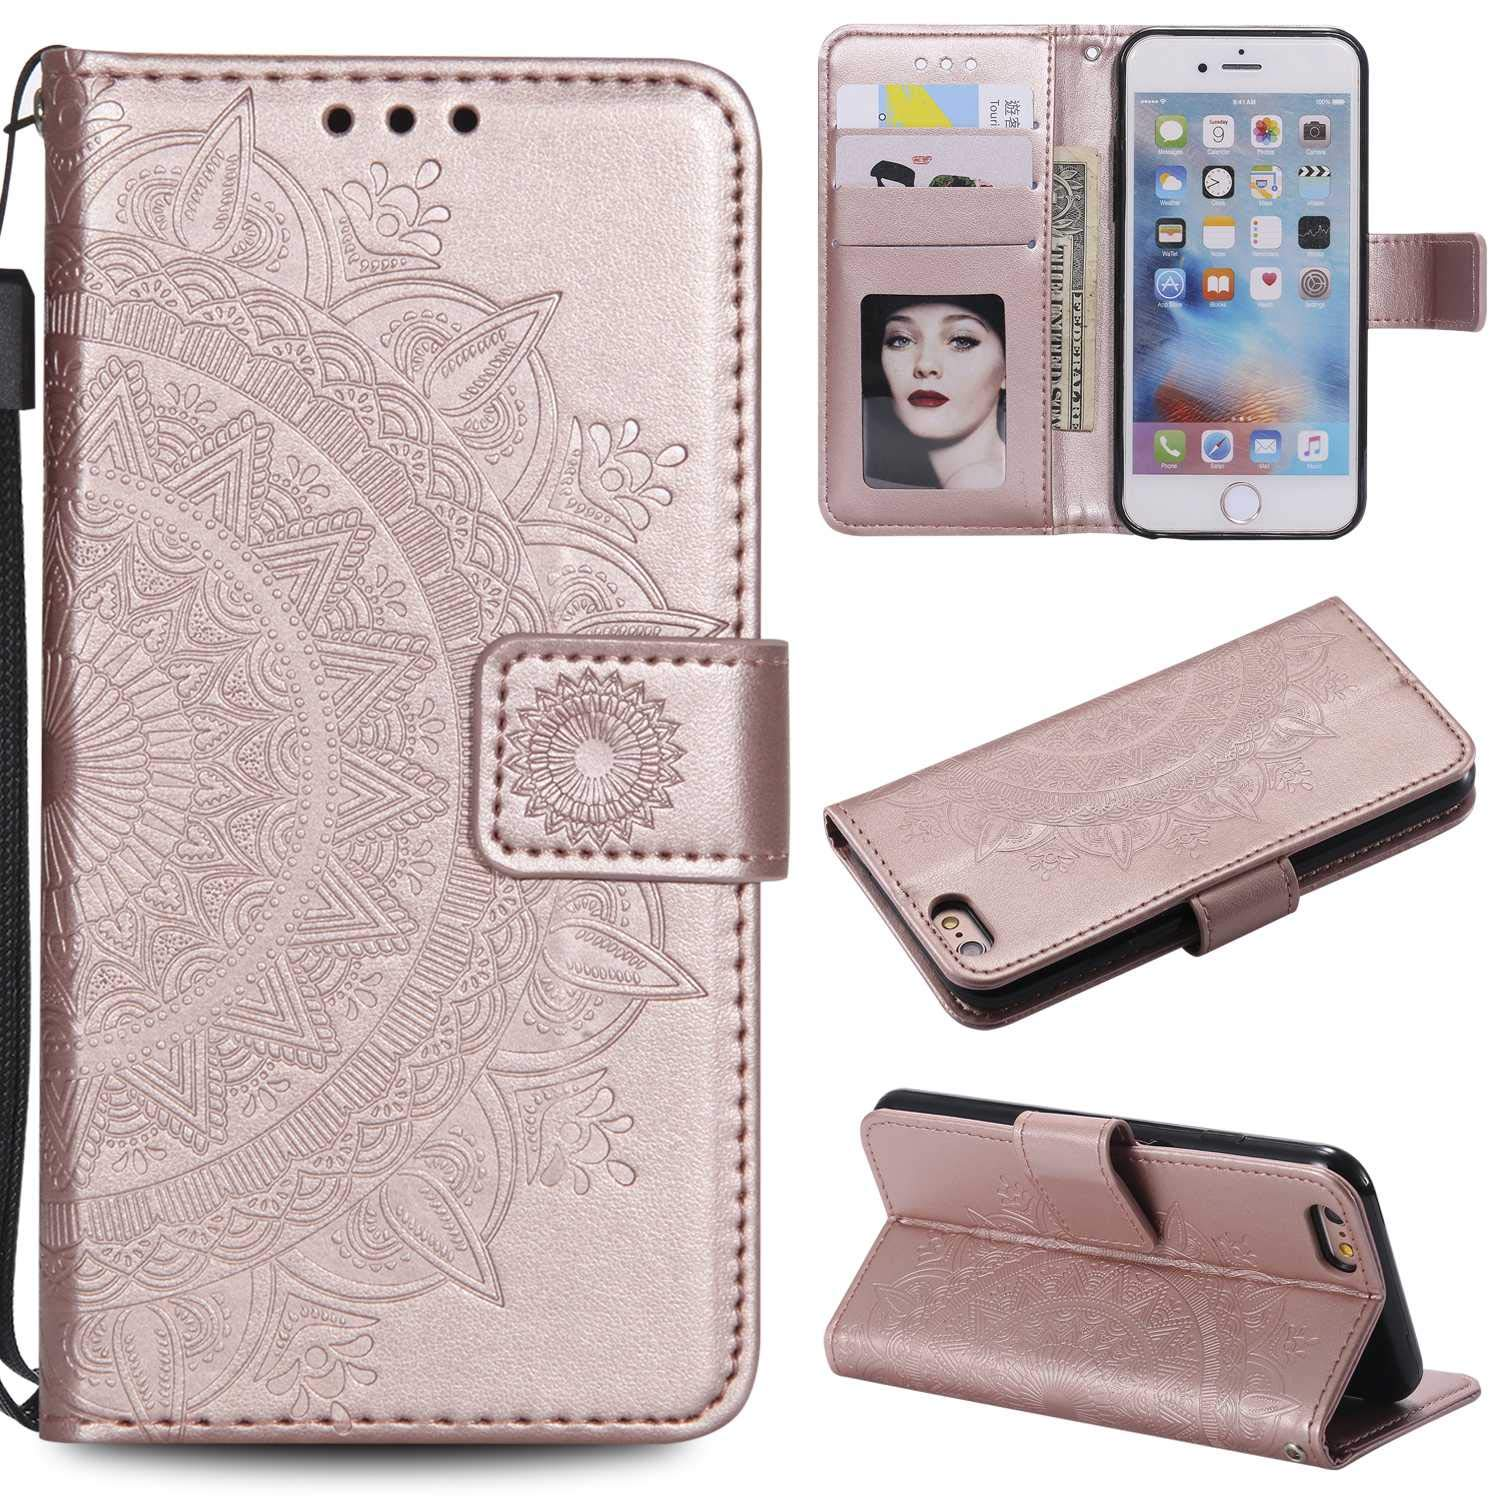 Case Galaxy S6 Bear Village Embossed PU Superior Leather 2021 new wit Design